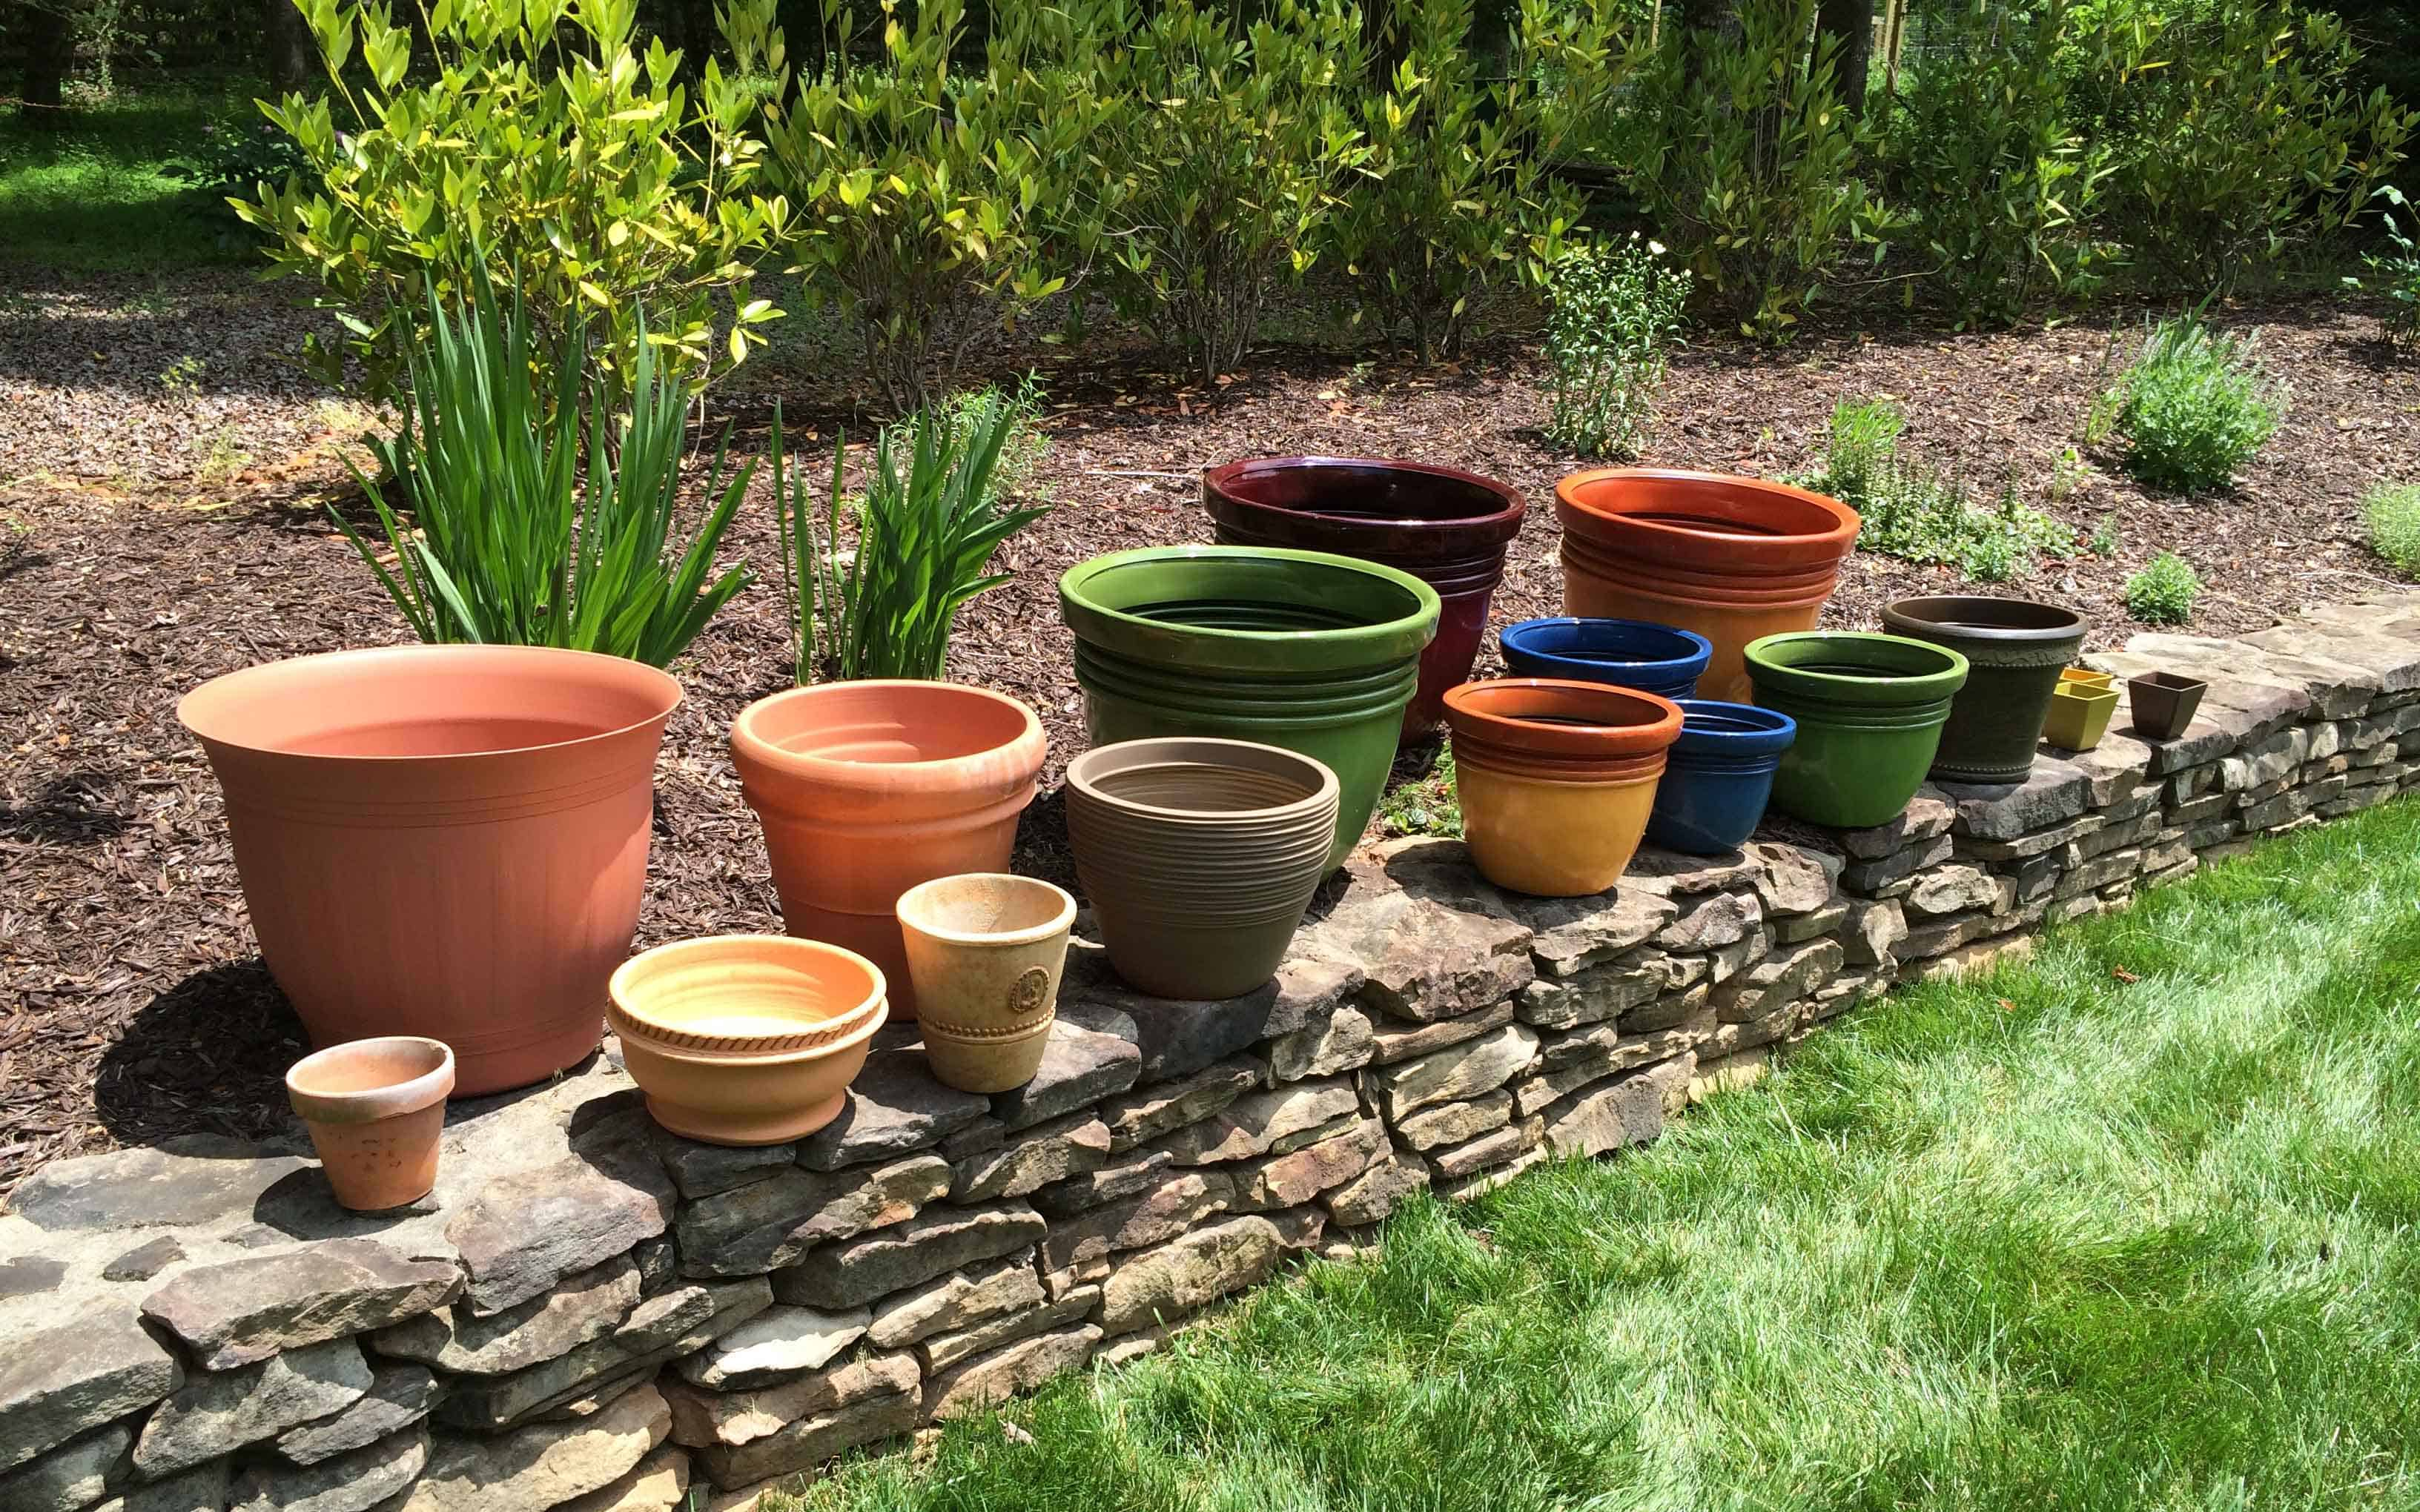 Containers for gardening